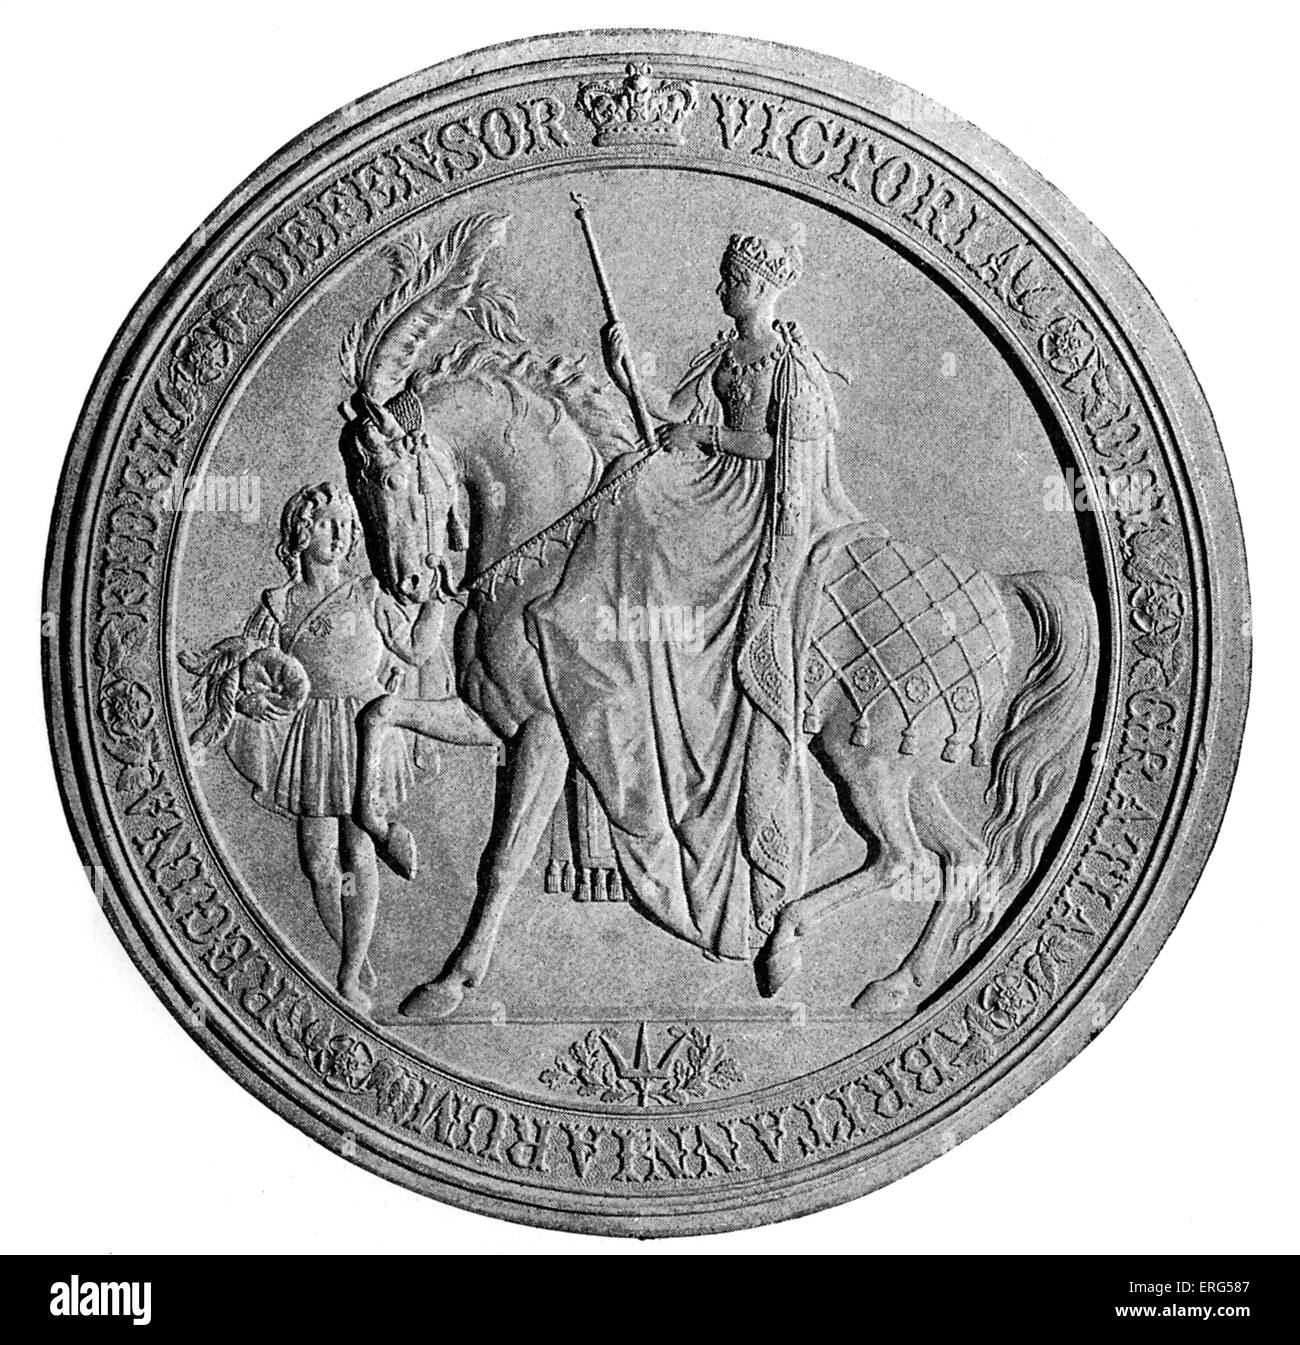 Great seal of Queen Victoria (the reverse side) - seal  used to symbolise the monarch's approval of important - Stock Image